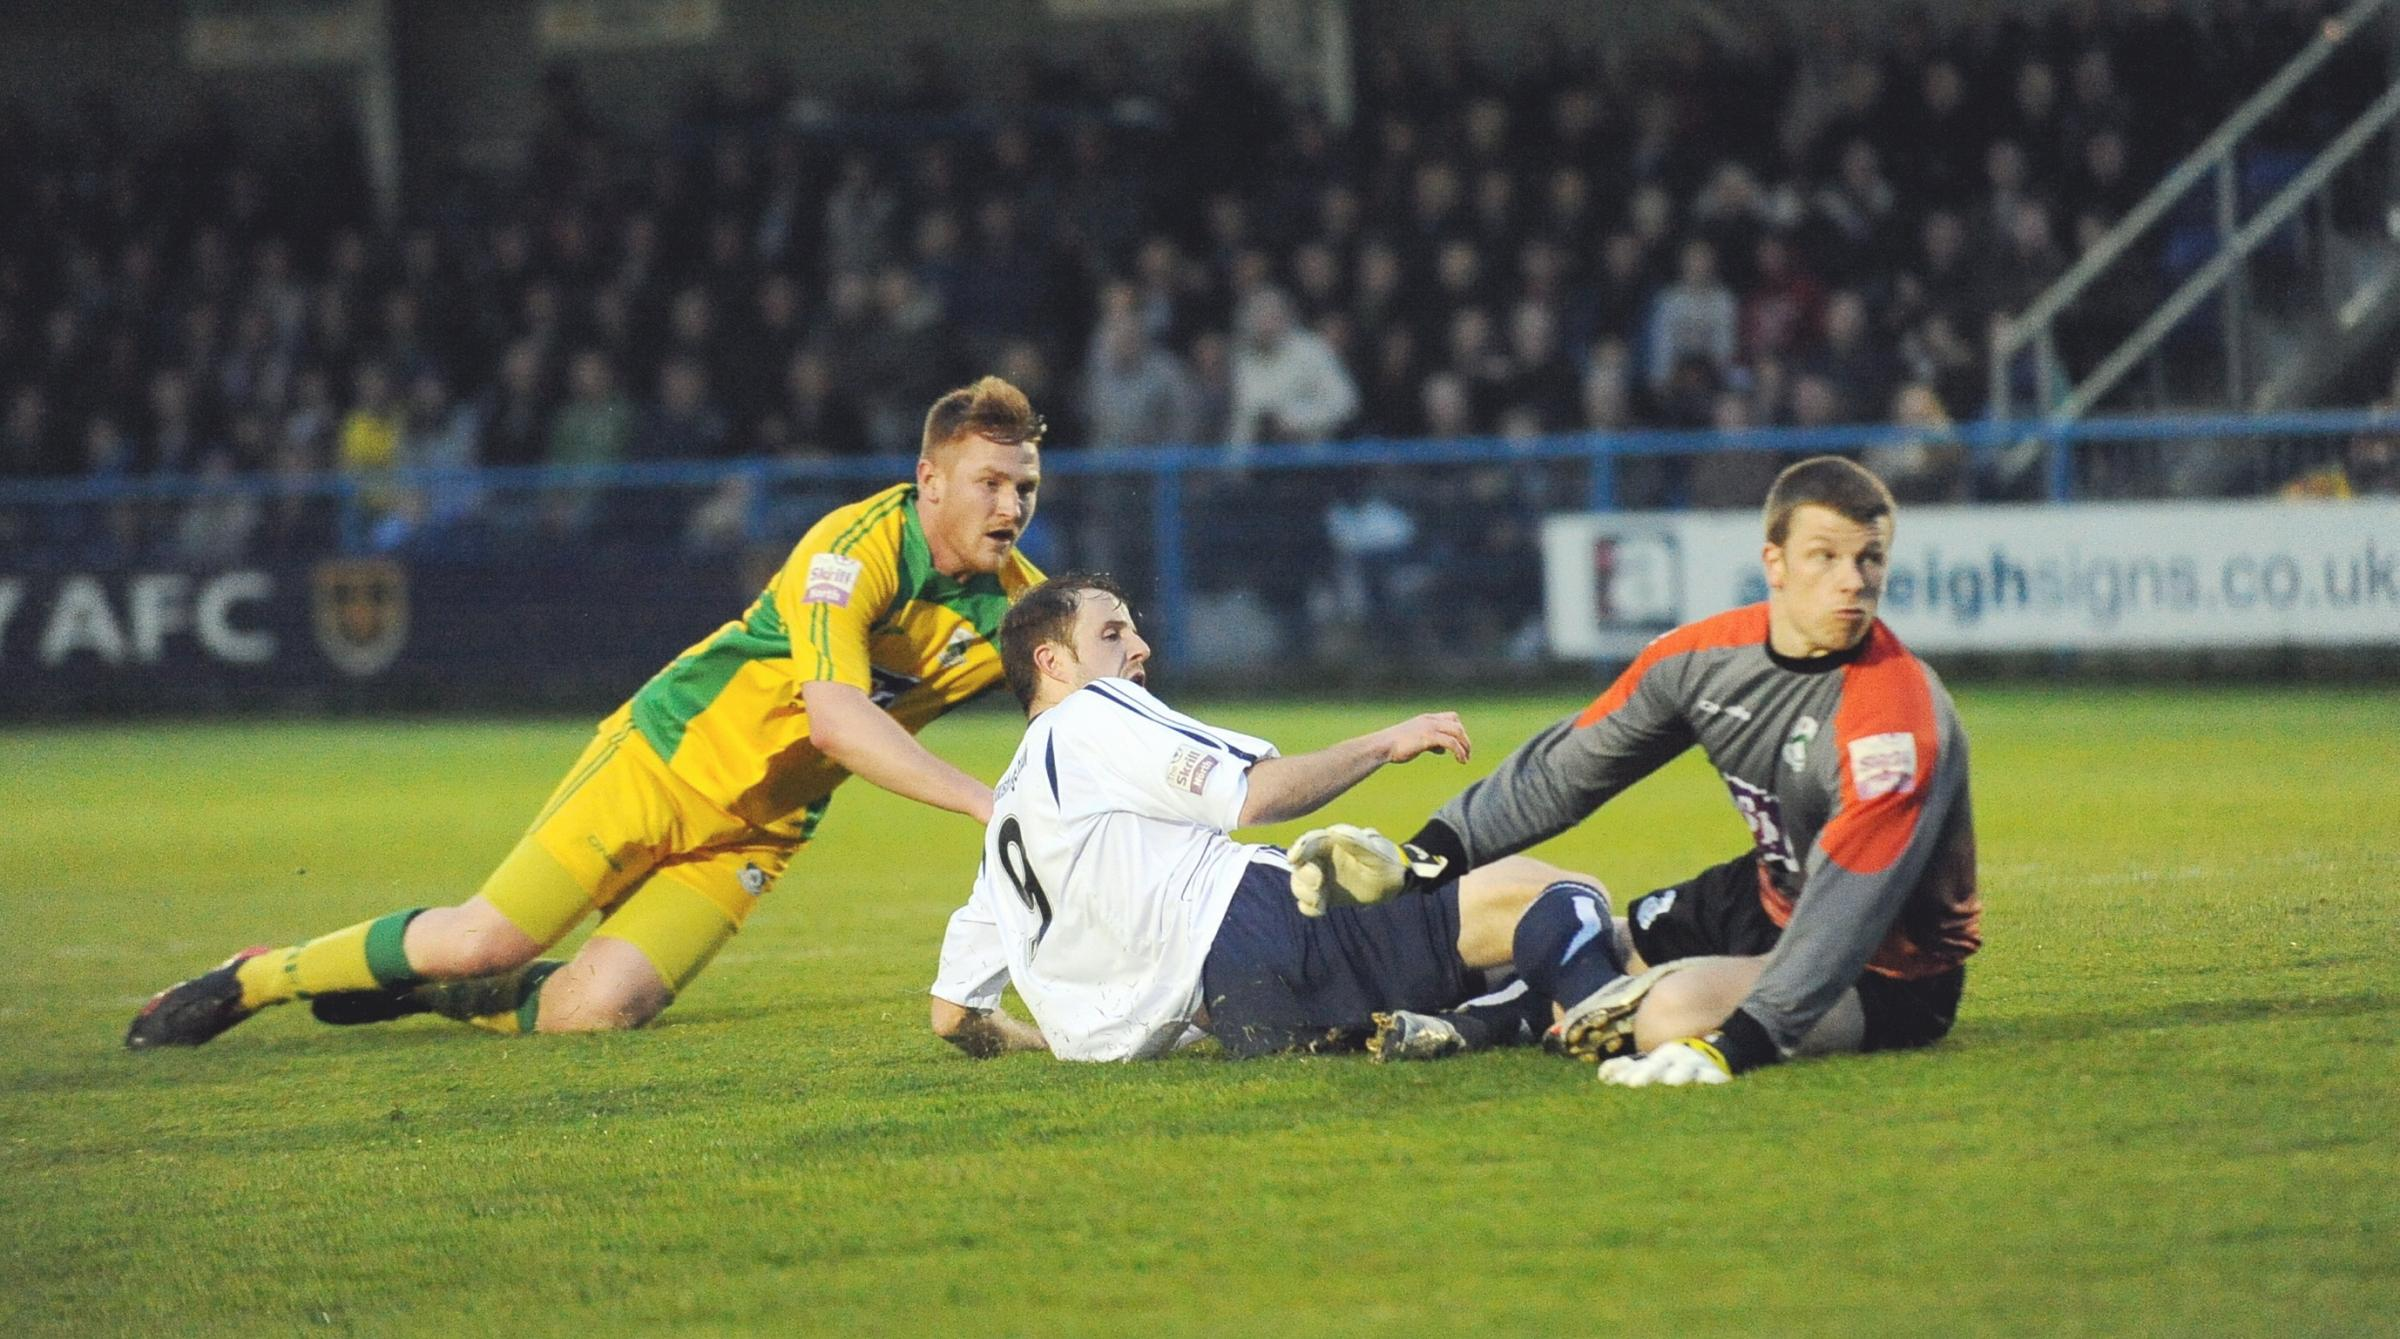 Guiseley looking good to win play-off battle